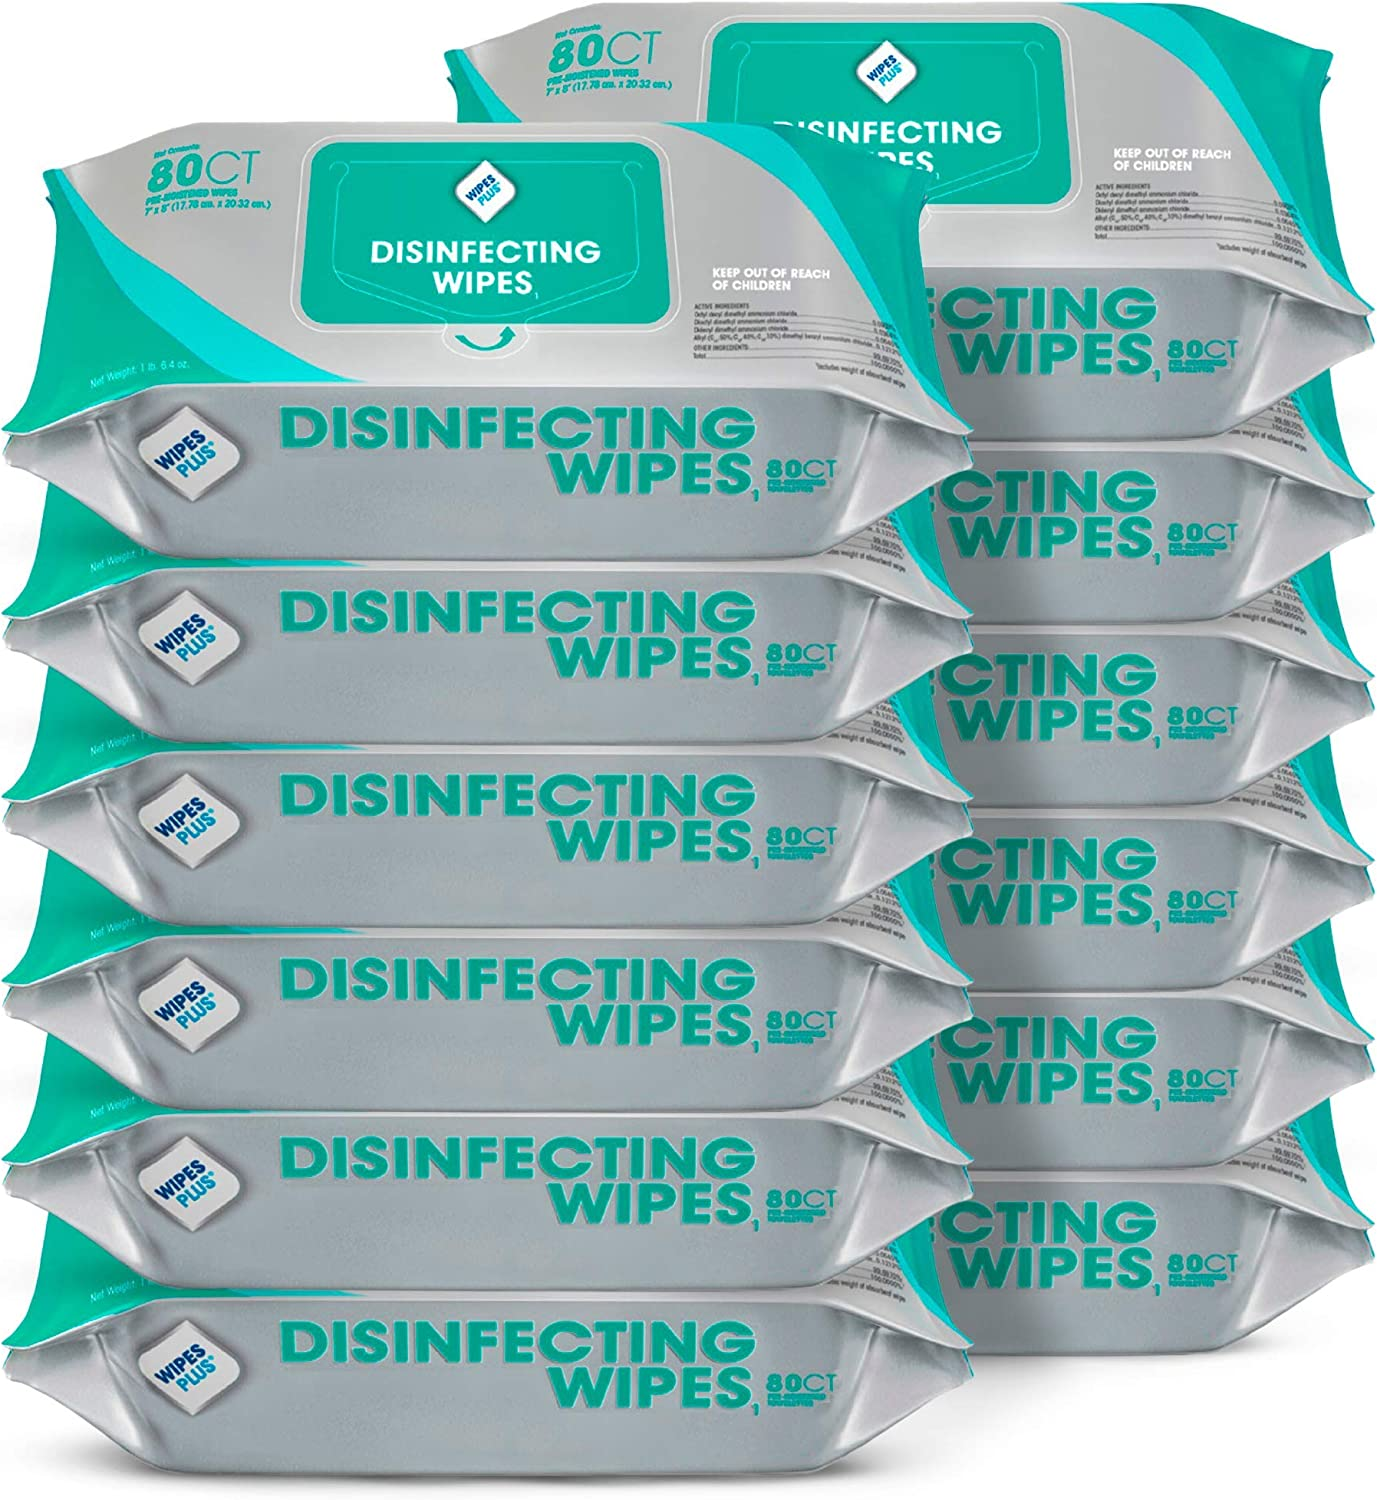 WipesPlus Disinfecting Wipes Bulk (960 Total Wipes) - 12 Packs of Industrial Strength Sanitizing Wipes - 80 Disinfectant Wipes per Pack - Made in USA